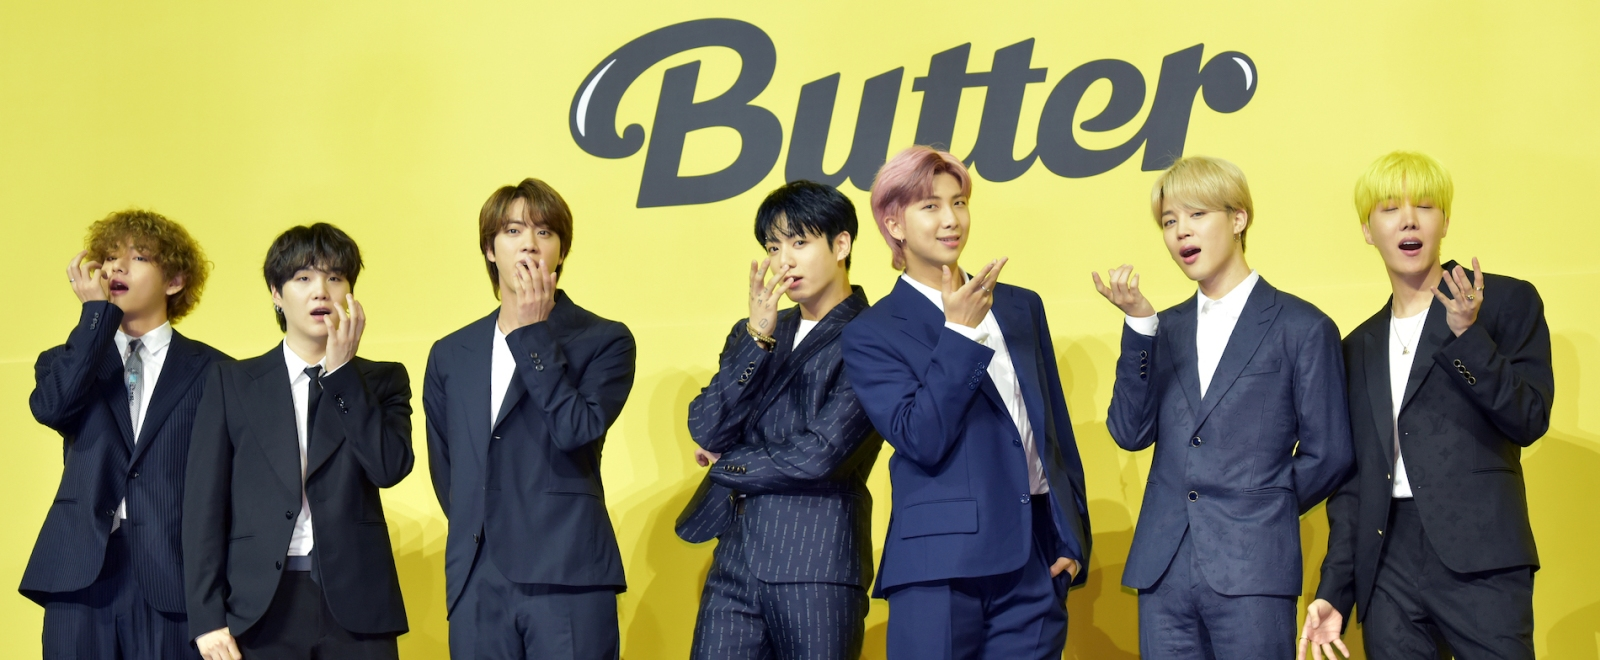 BTS' 'Butter' Is Now The Longest Running No. 20 Single Of The Year